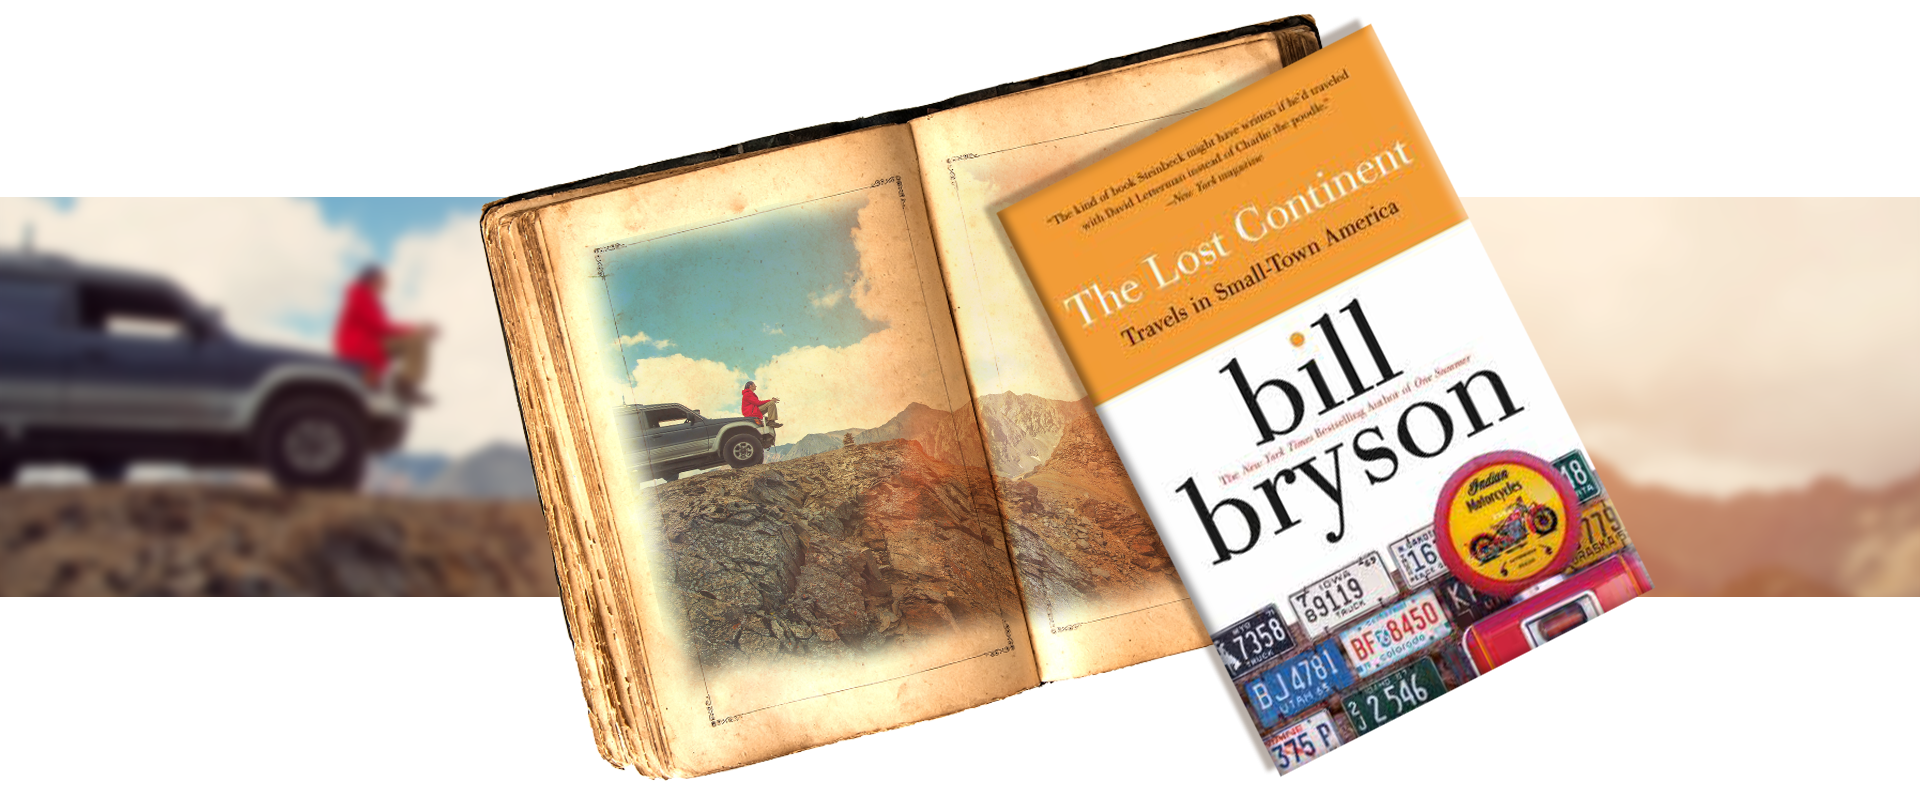 The lost continent by Bill Bryson - vintage book - road trip across America